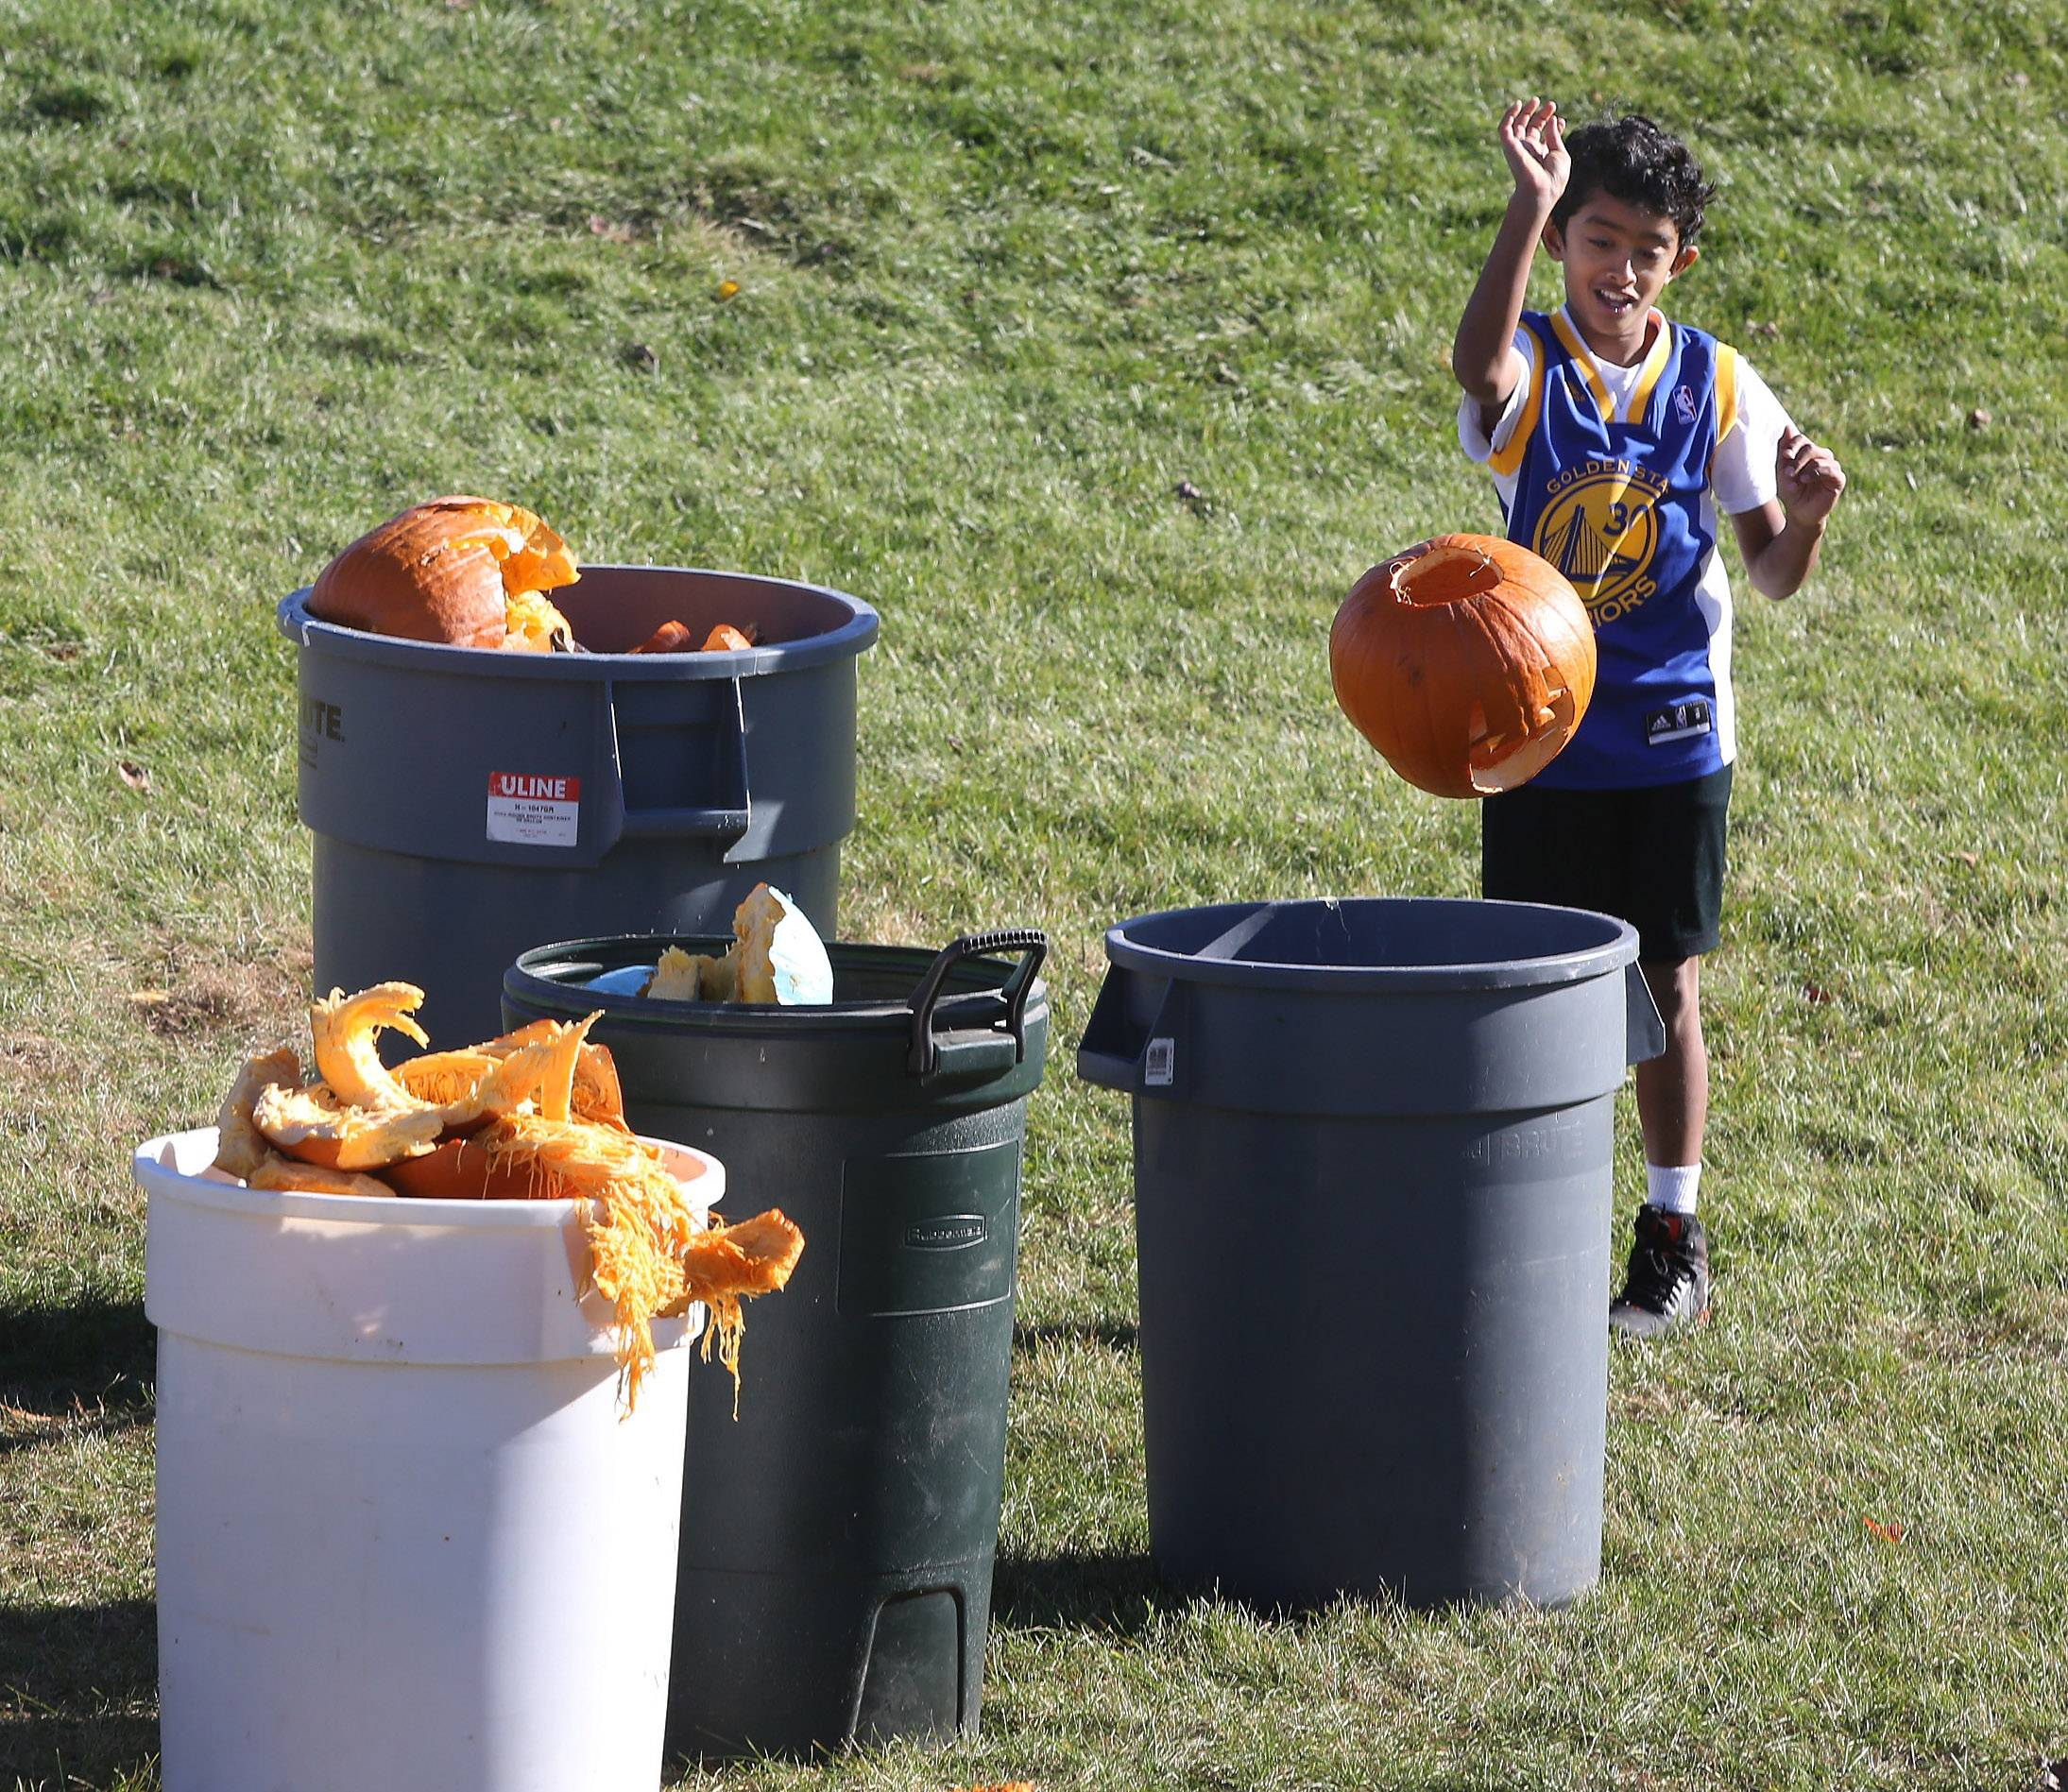 Keshav Chandramouli, 9, of Mundelein throws a pumpkin in a garbage can after the 8th annual Pumpkin Drop Sunday at Keith Mione Community Park in Mundelein. The leftover pumpkin scraps from the event were collected and sent to the Prairie Crossing farm in Grayslake for composting.